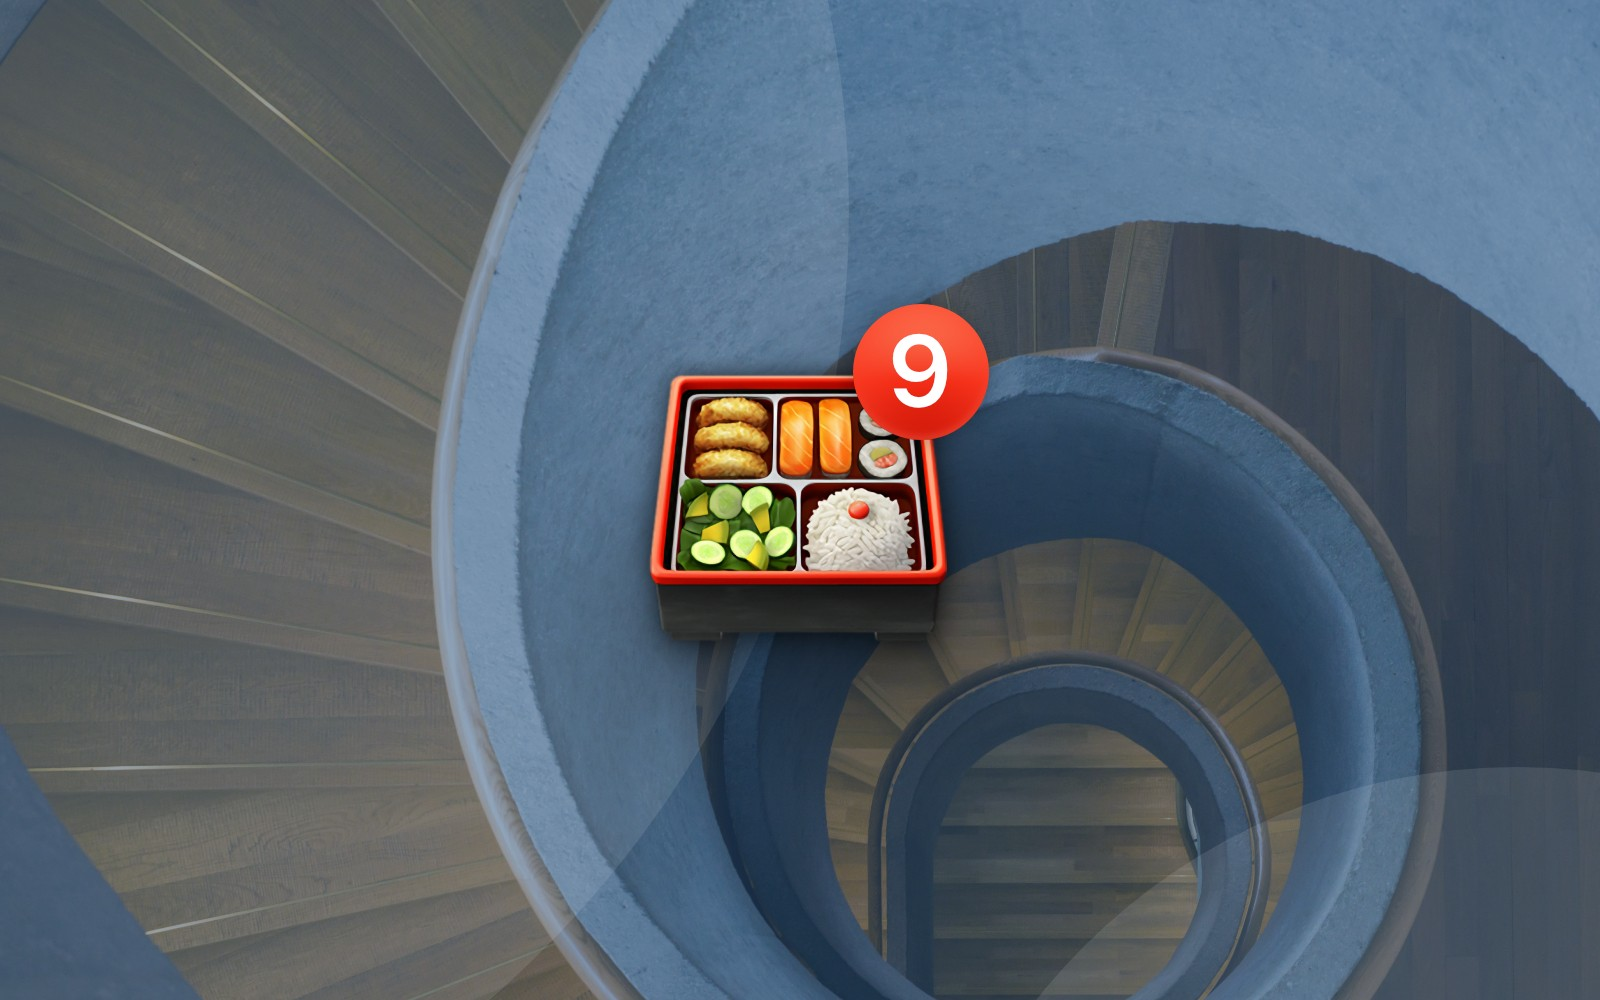 Bento box emoji with number 9 badge on spiral stair background